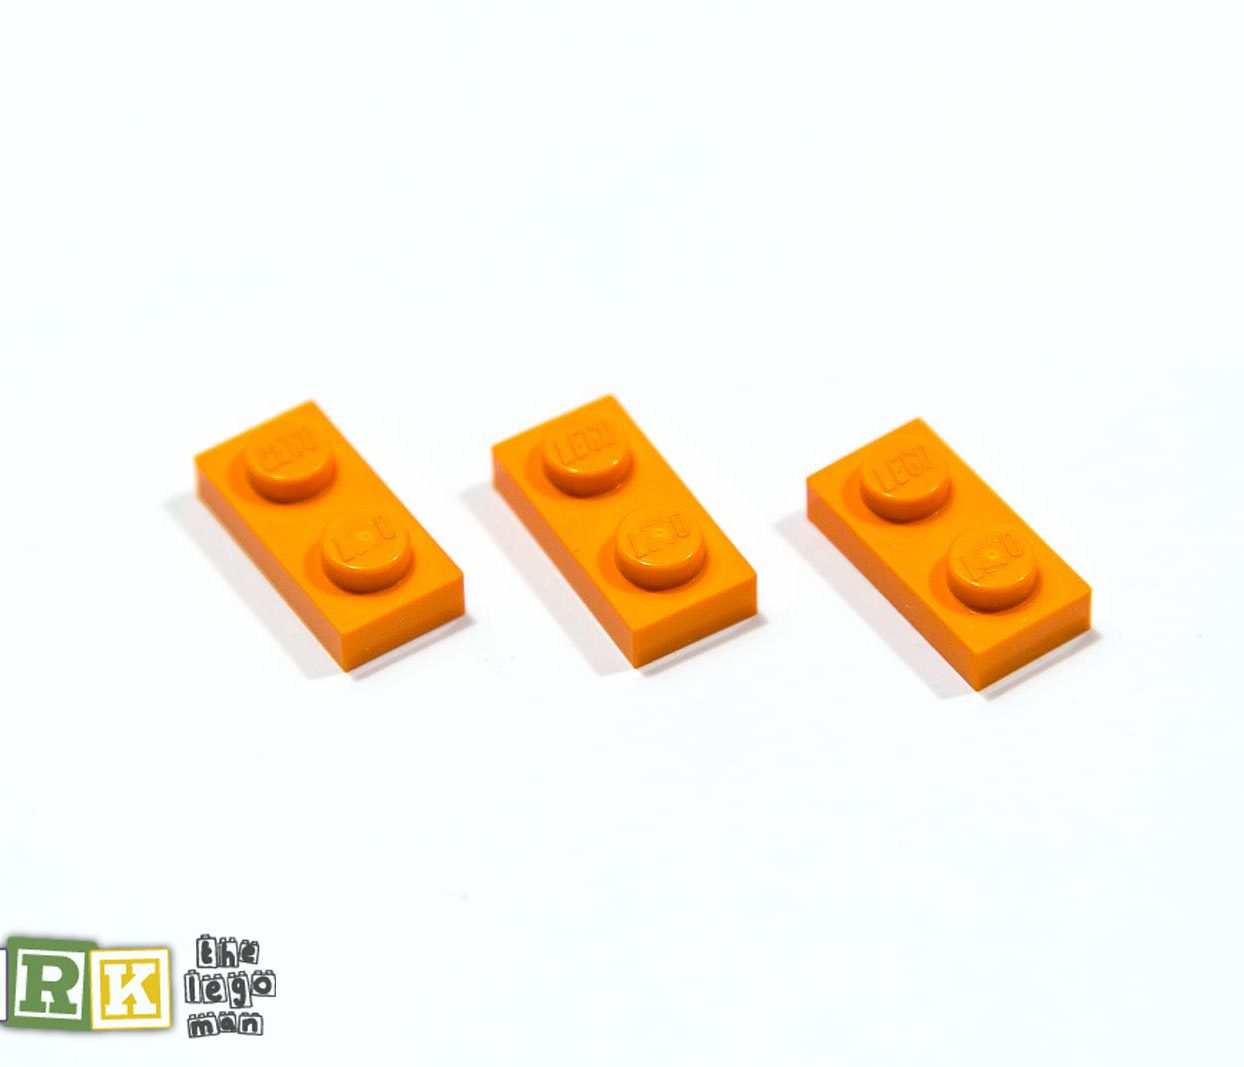 NEW Lego 4177932 3023 3x Bright Orange 1x2 Plate